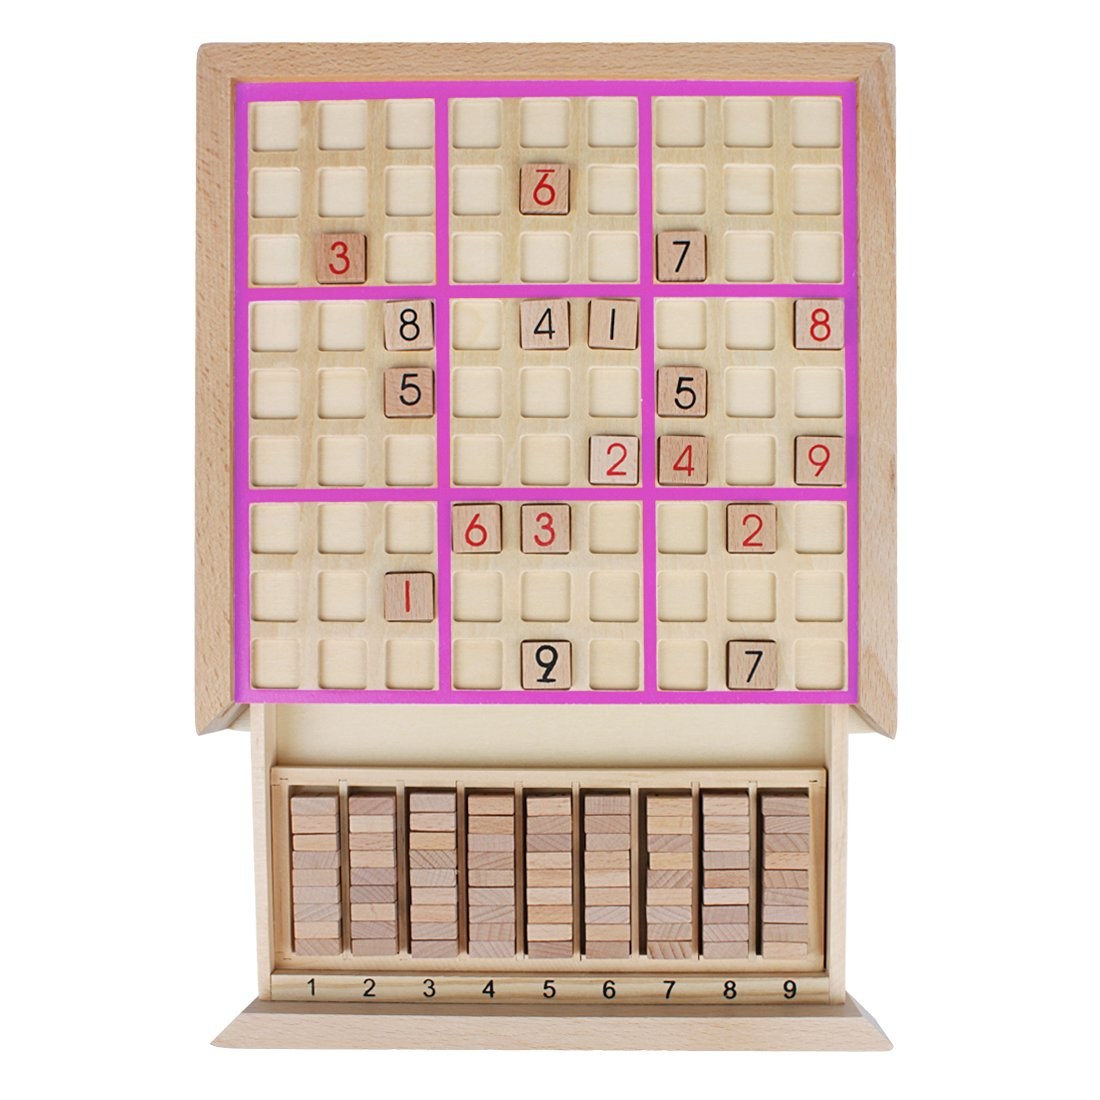 Andux Land Wooden Sudoku Puzzle Board Game with Drawer SD-02 (Pink) by Andux